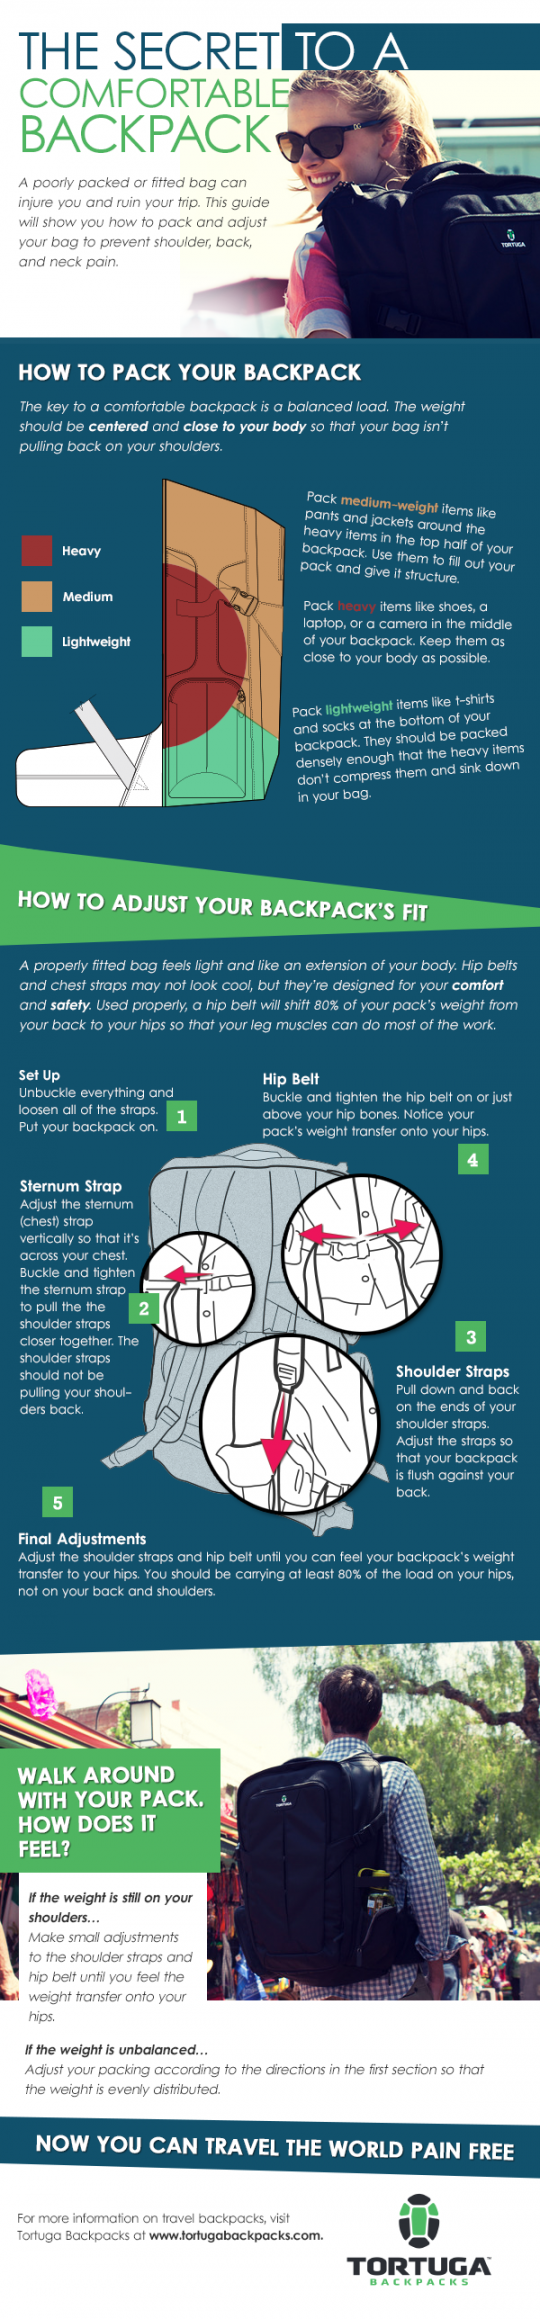 The Secret to a Comfortable Backpack